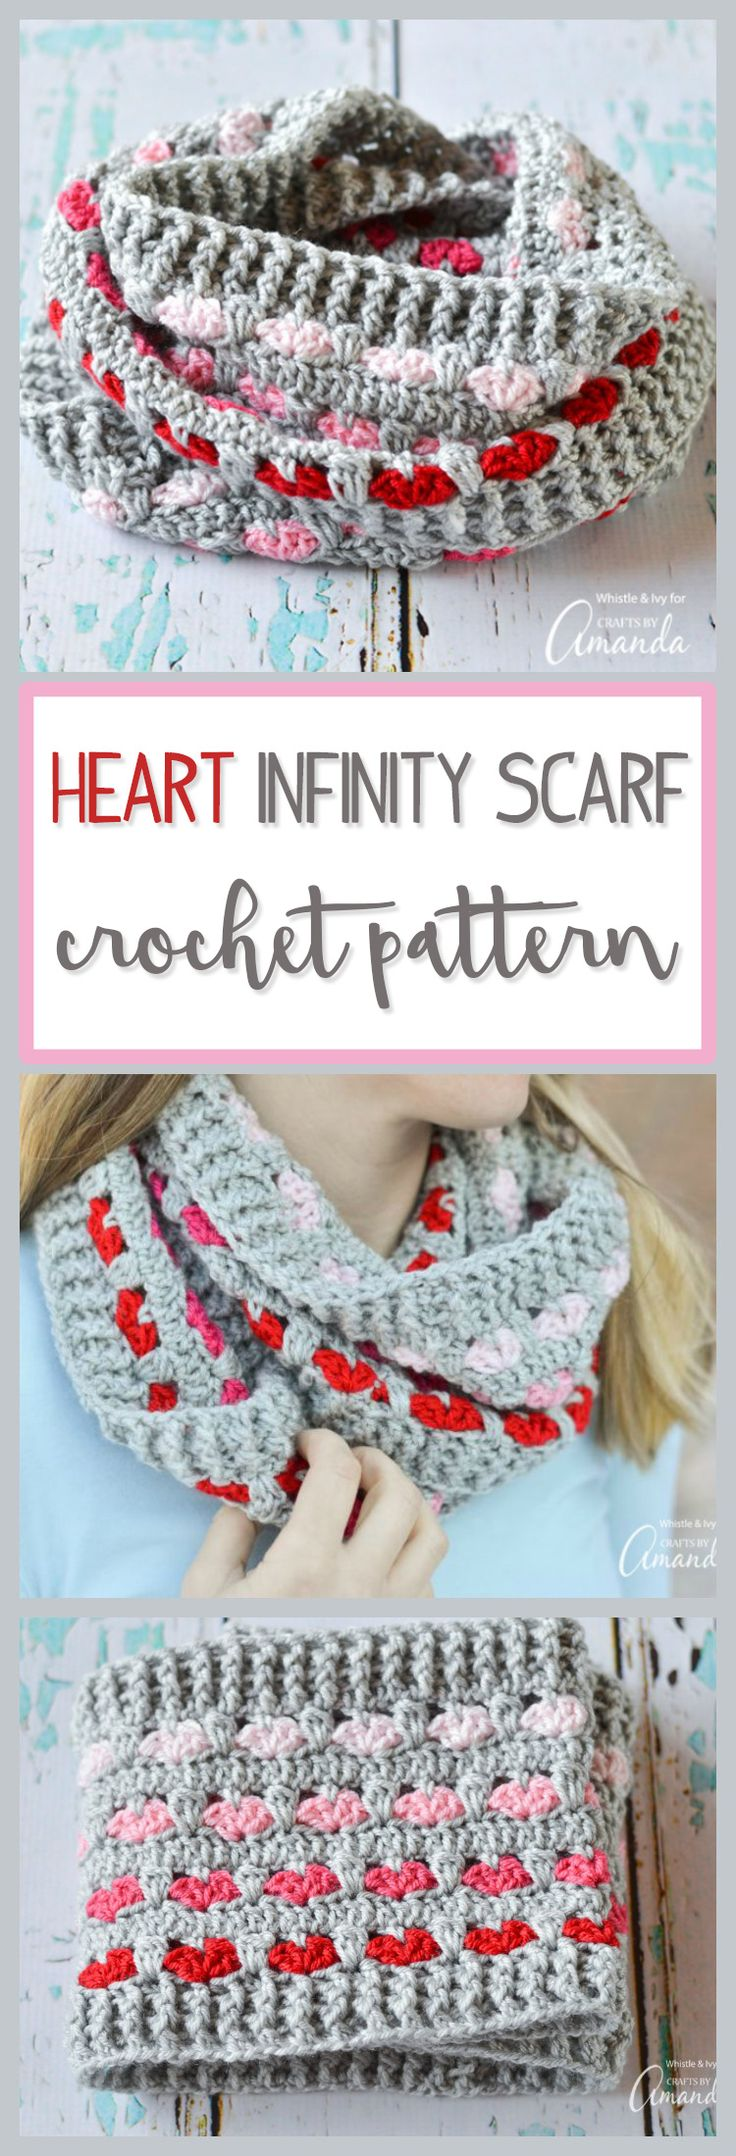 Use this infinity scarf crochet pattern to make the perfect heart themed cozy neck wrap. This will be great for Valentine's Day!